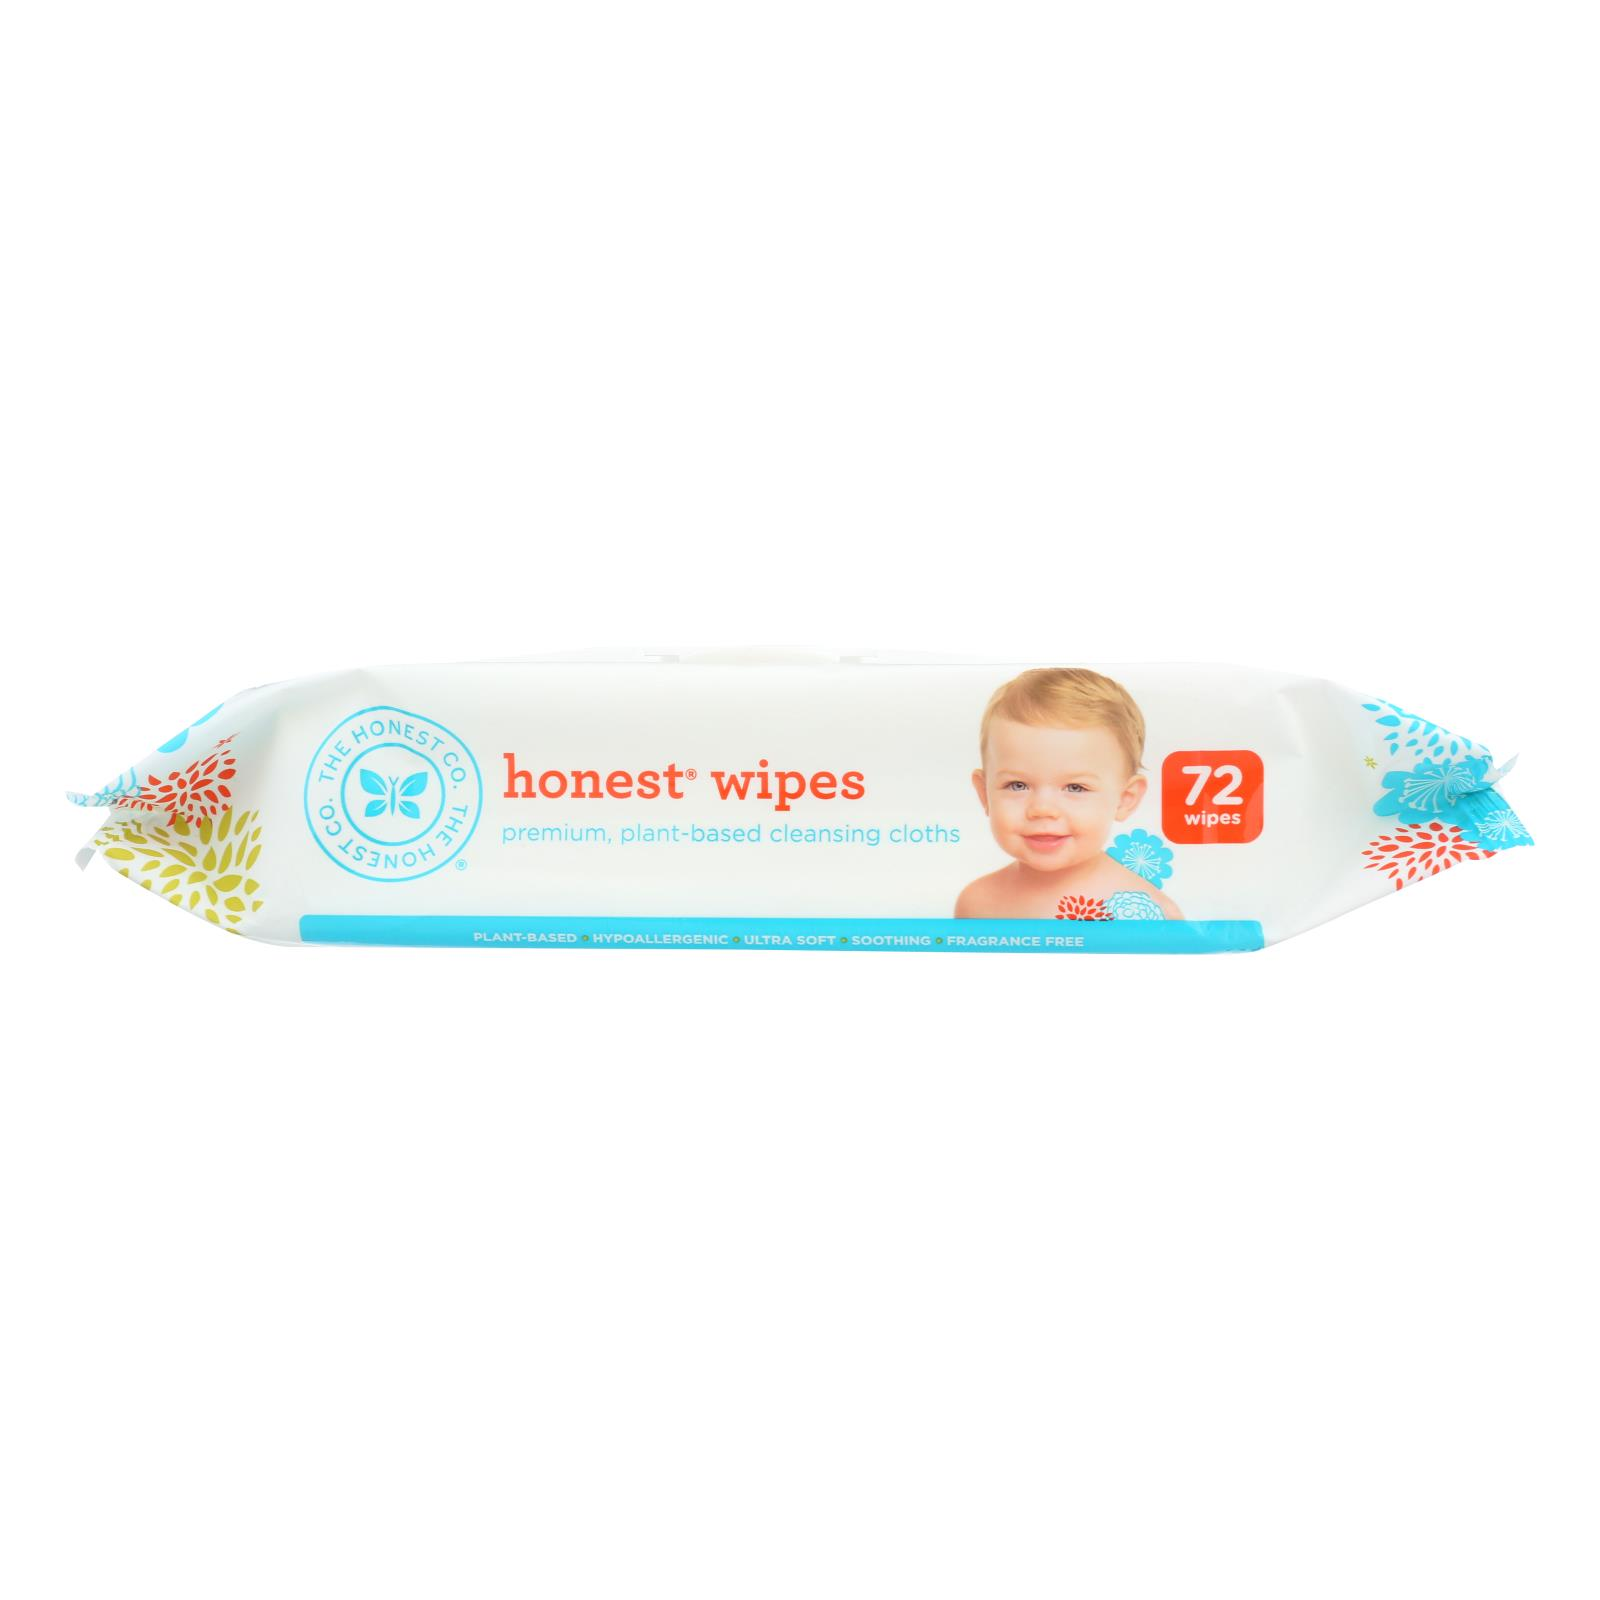 The-Honest-Company-Honest-Wipes-Unscented-Baby-72-Wipes